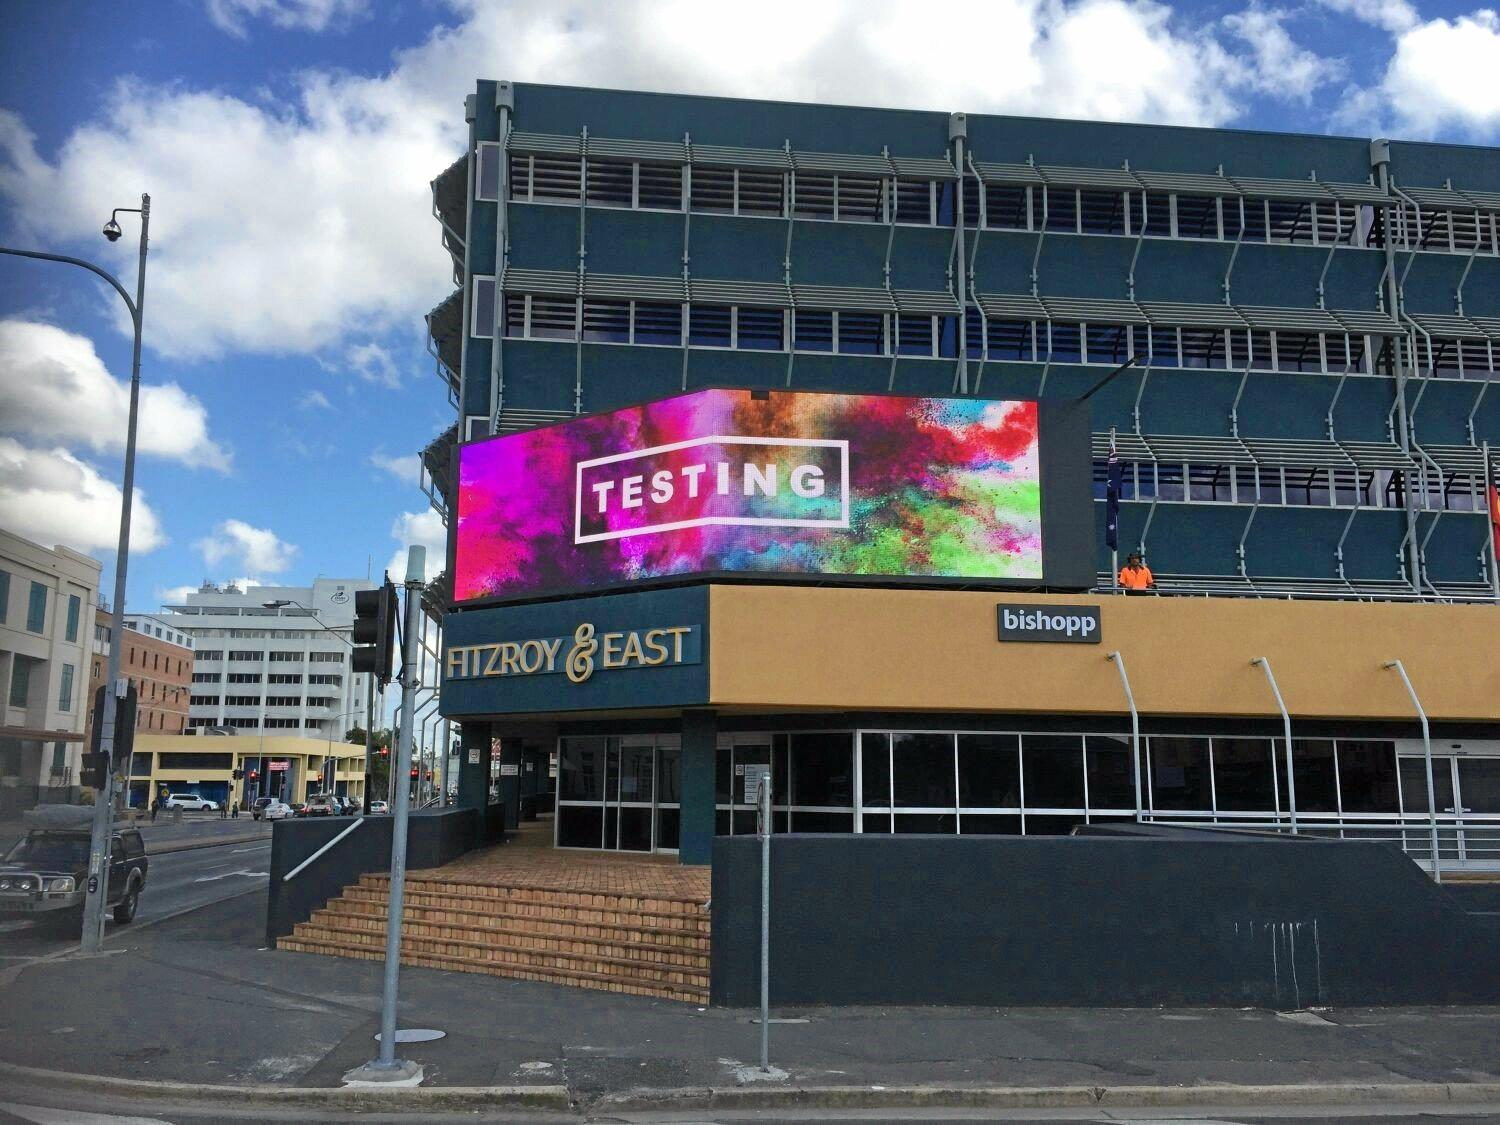 The new electronic billboard will be a similar design to the one placed on the corner of Fitzroy and East streets.